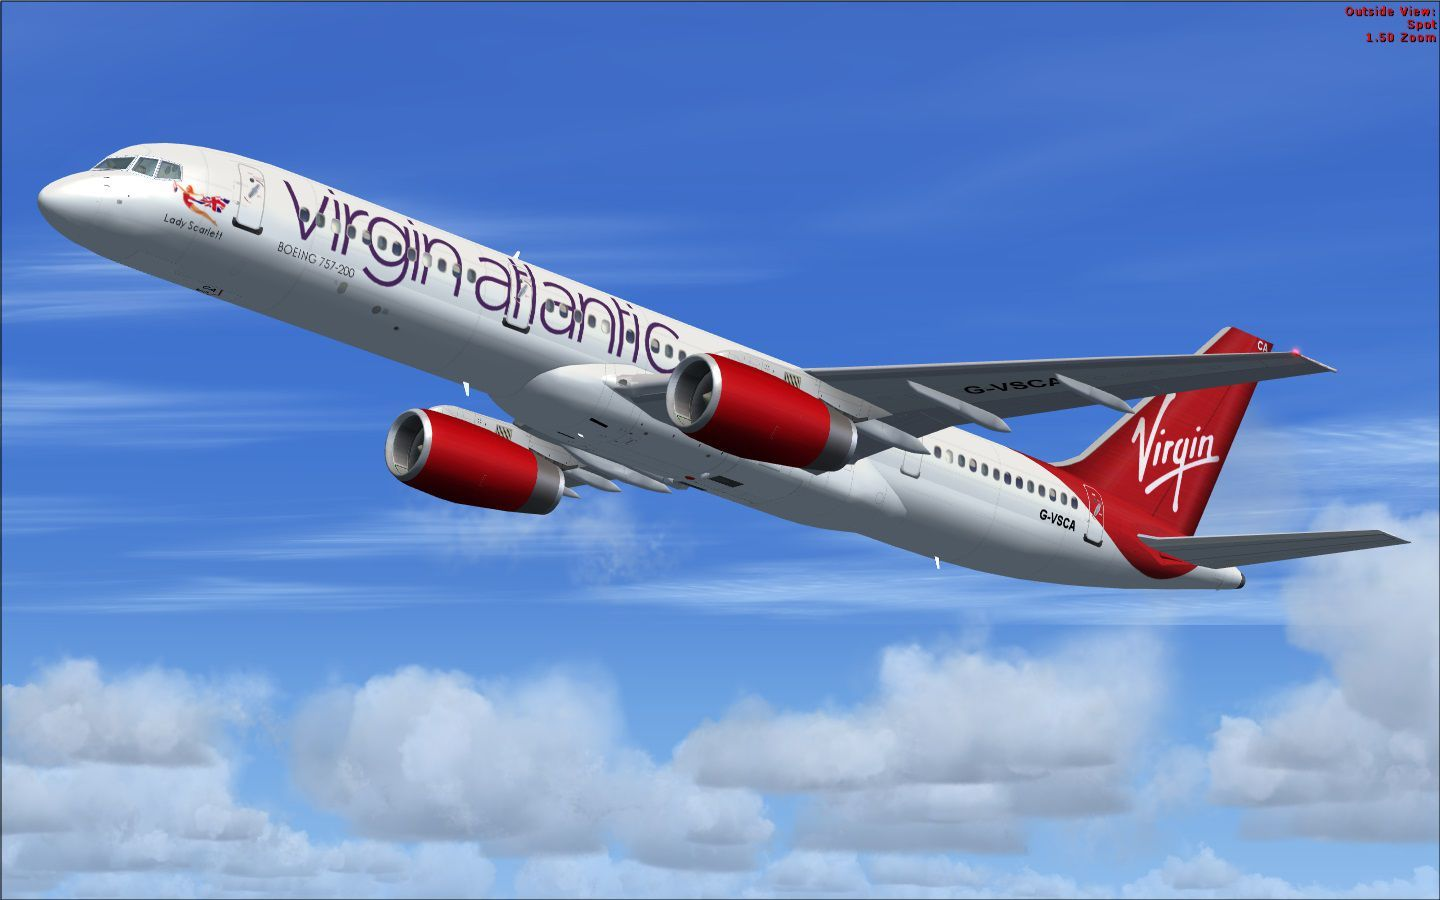 Virgin Atlantic Boeing 757-200